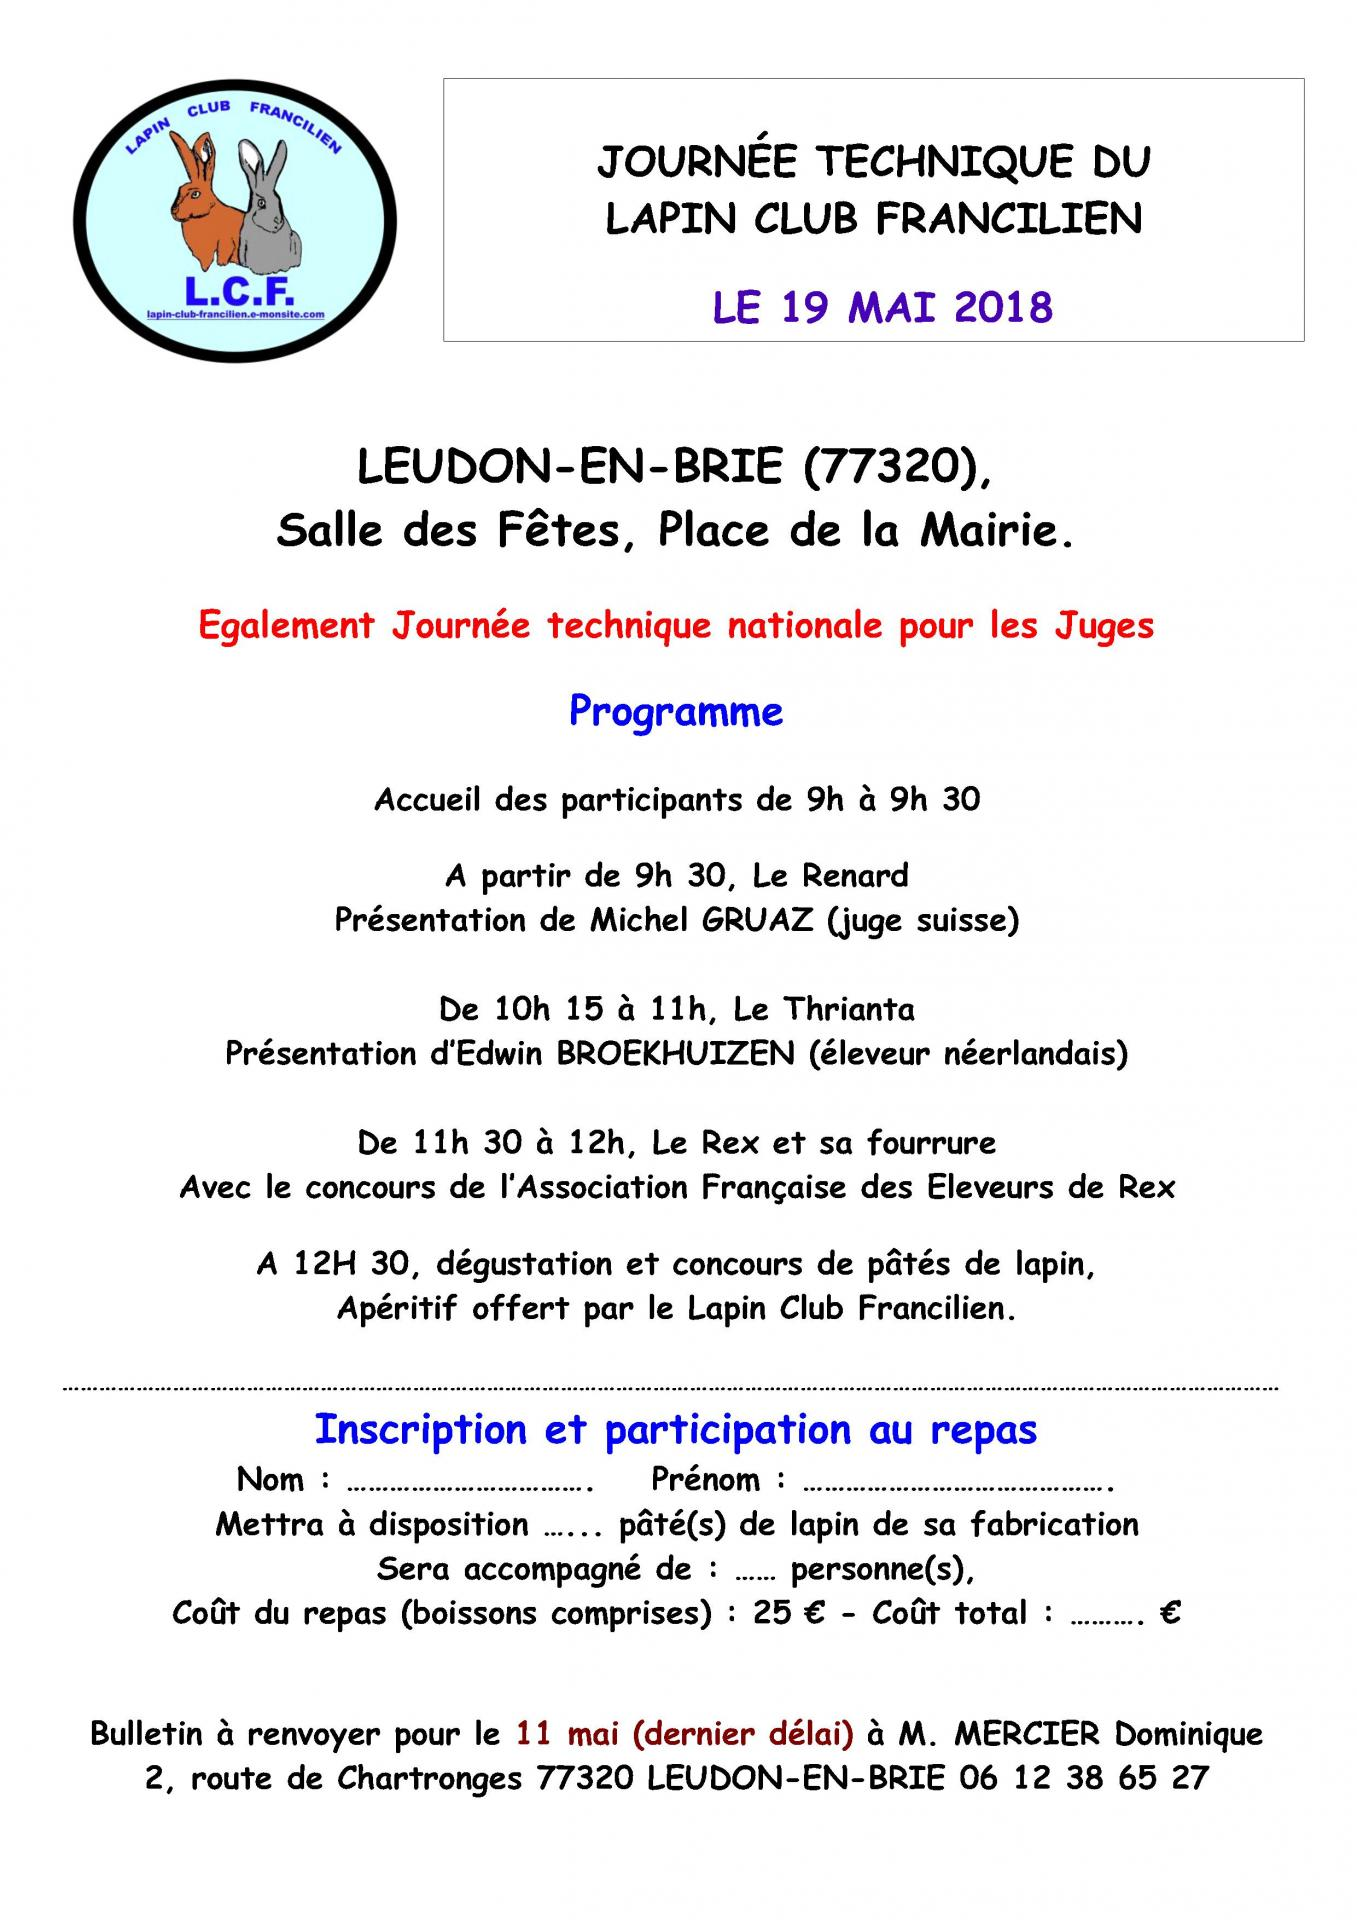 Journee technique lcf 19 mai 2018